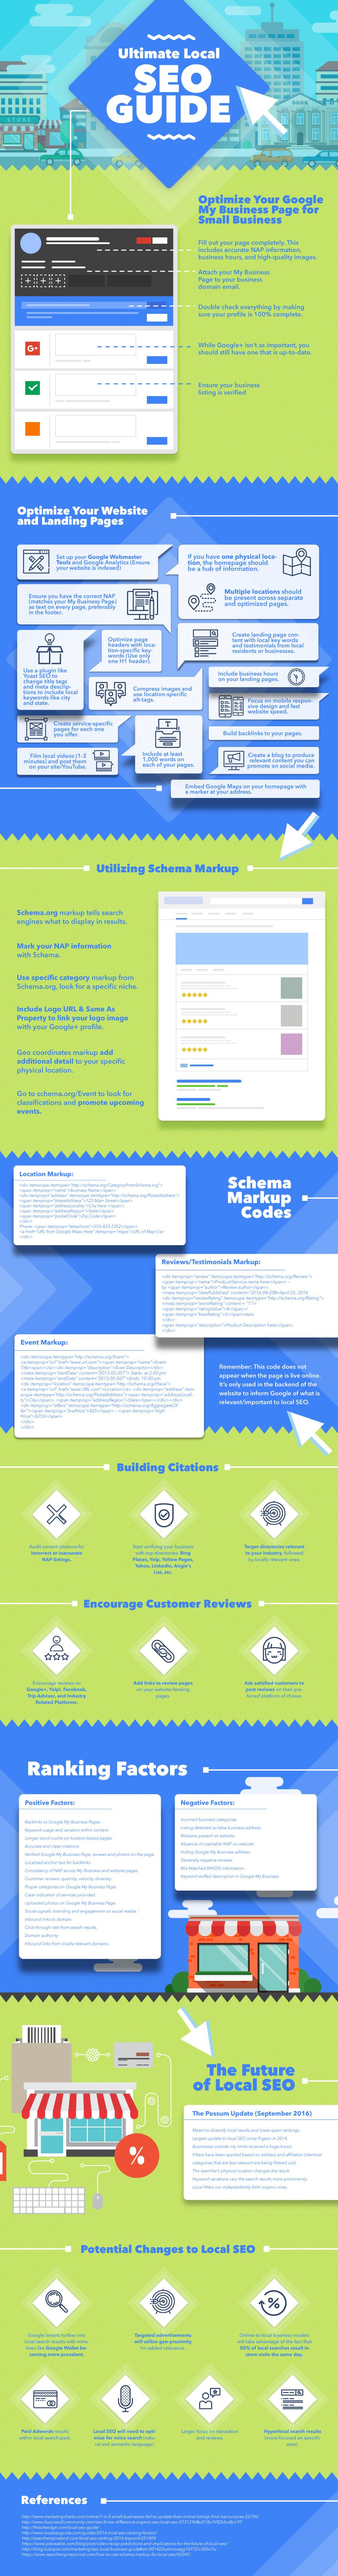 The Ultimate Local SEO Guide: How to Get More Customers From Google [Infographic] - http://topseosoft.com/the-ultimate-local-seo-guide-how-to-get-more-customers-from-google-infographic/